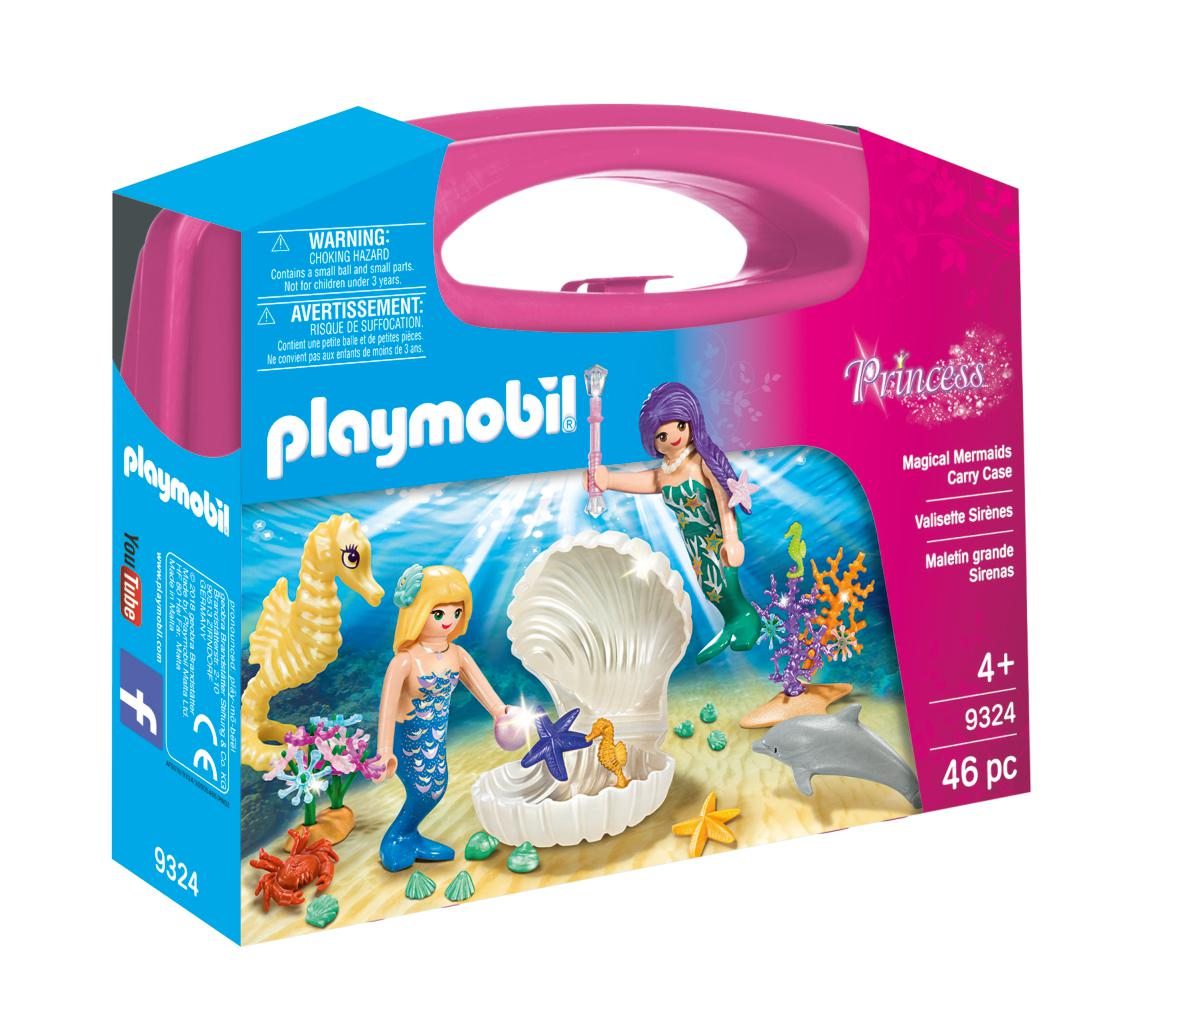 Mermaid Carry Case - Playmobil